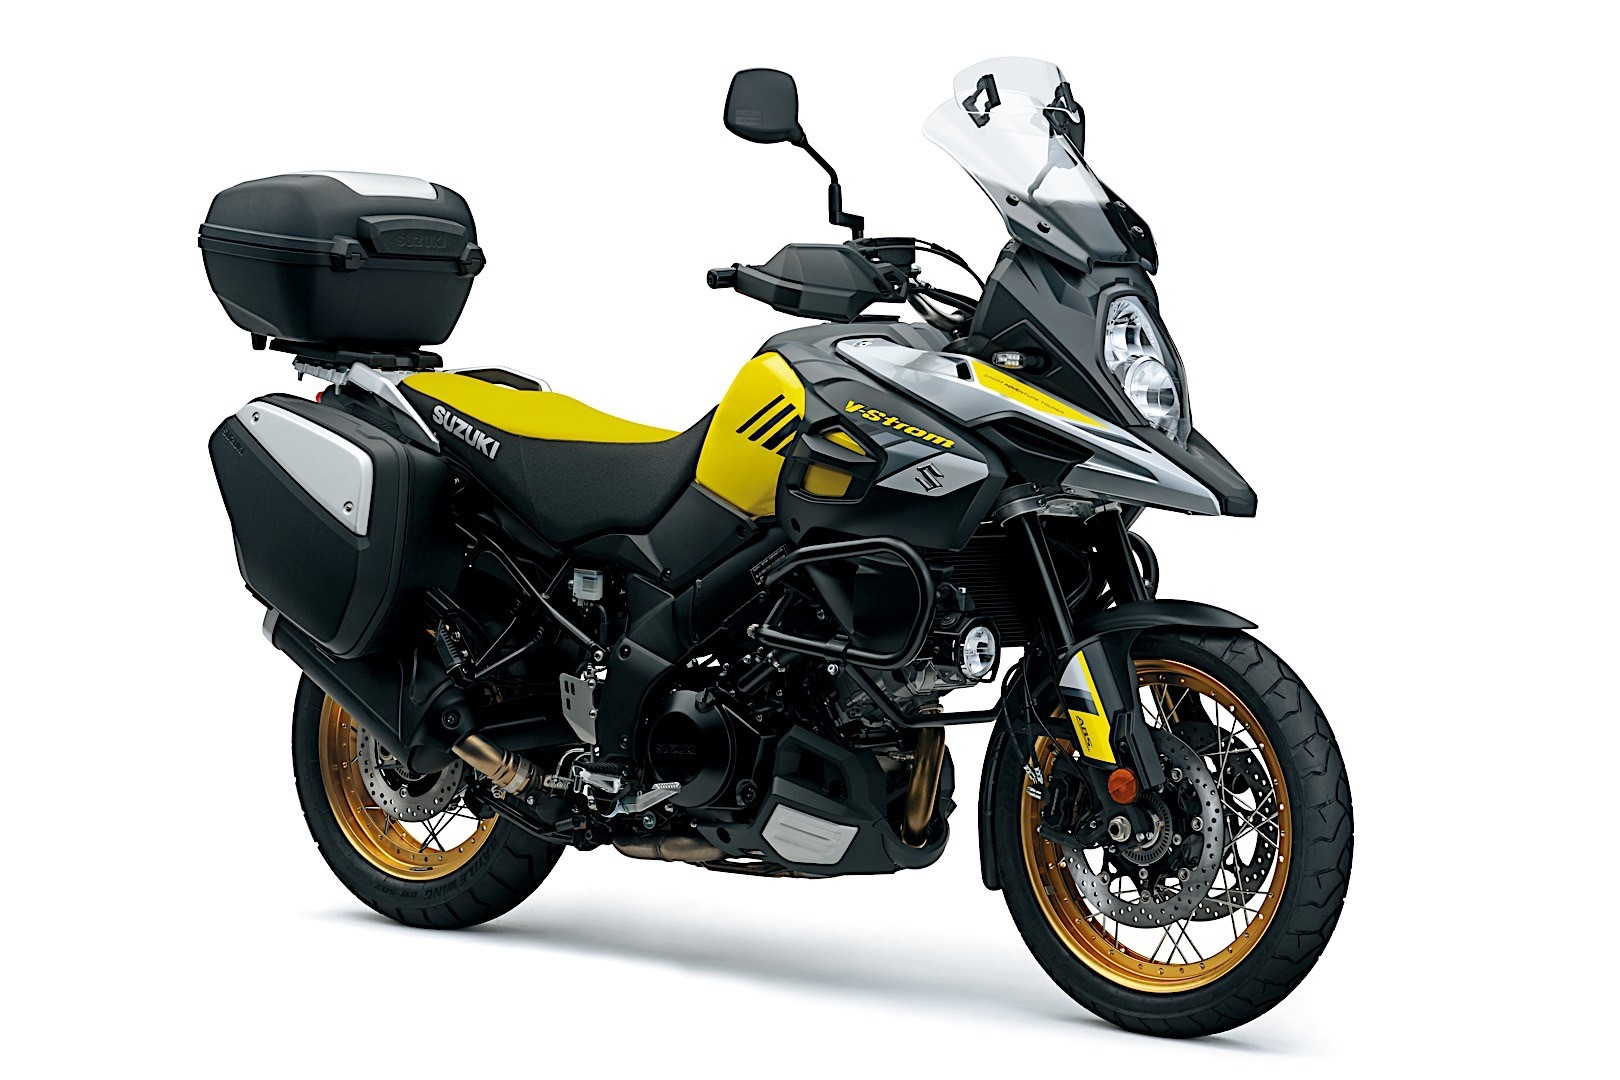 2014 suzuki dl650a v strom recalled for chain related. Black Bedroom Furniture Sets. Home Design Ideas